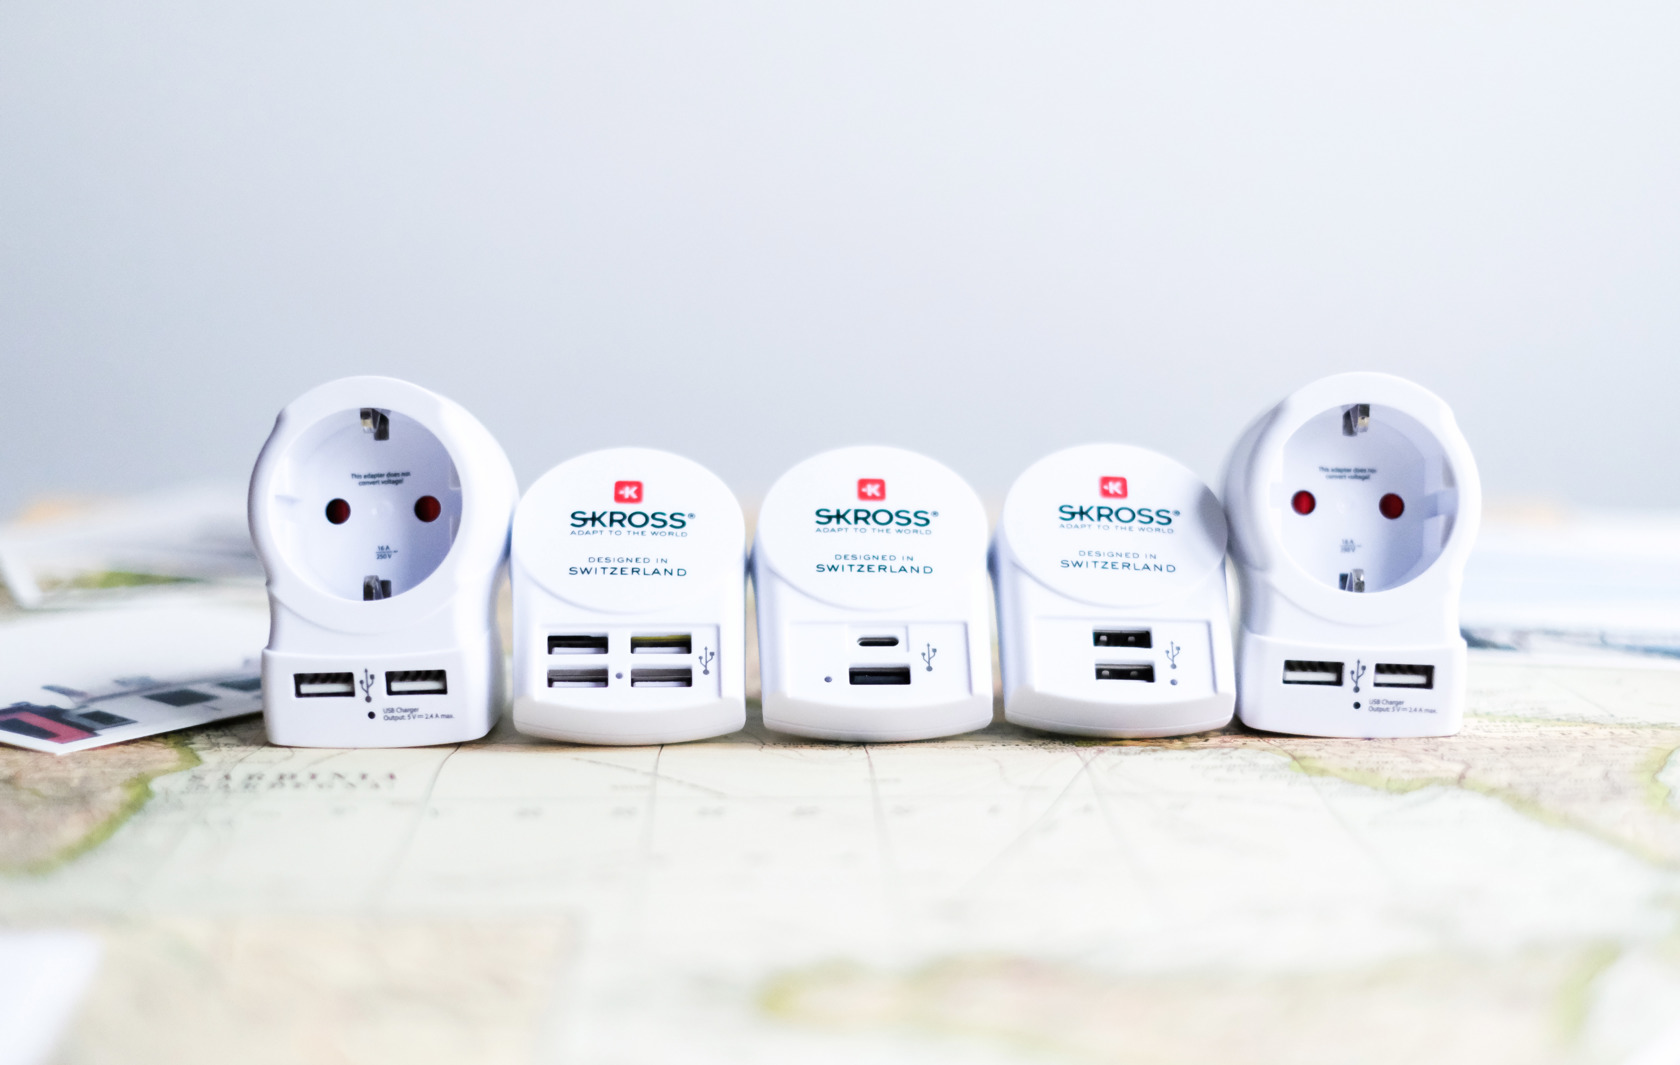 Euro USB Charger (AC), (2xA), (4xA), Europe to UK USB, Europe to USA USB